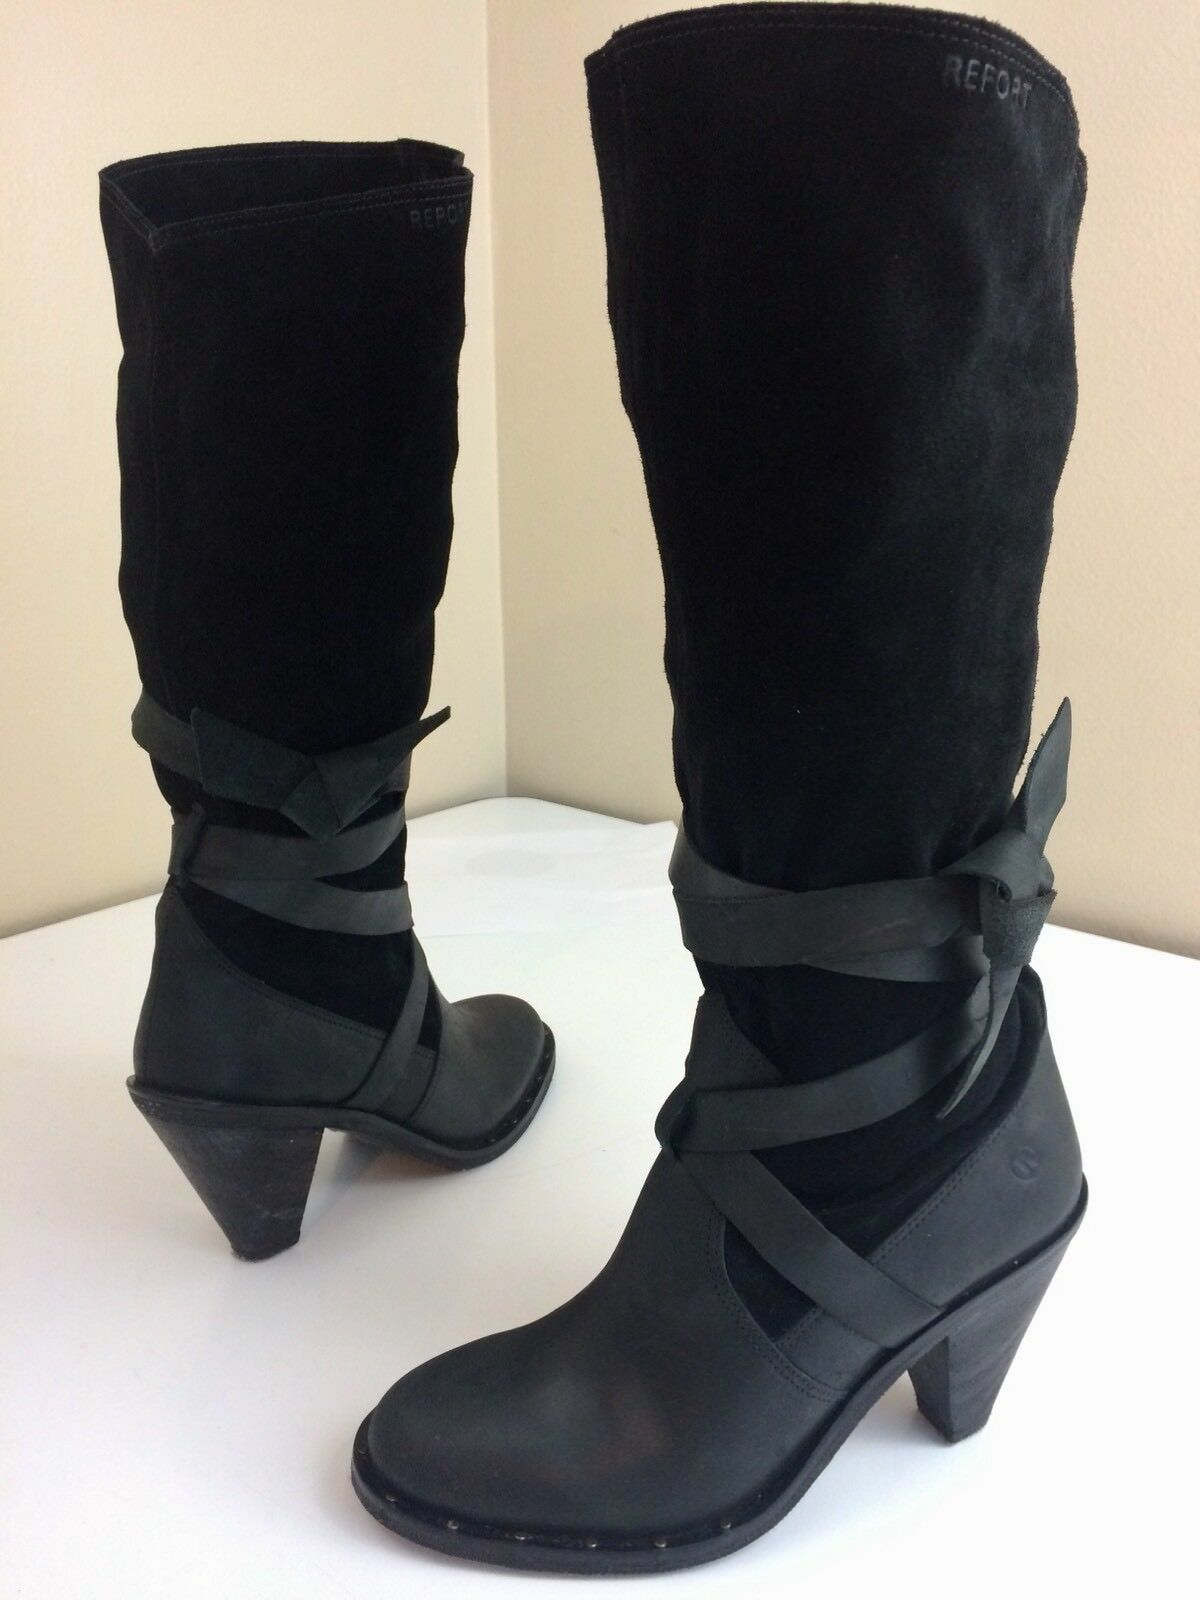 45f76667bc5a Report Lady Black SUEDE Leather TIE Up Up Up Knee Hi SLOUCH Fashion Boots  High Heels 9 064f81